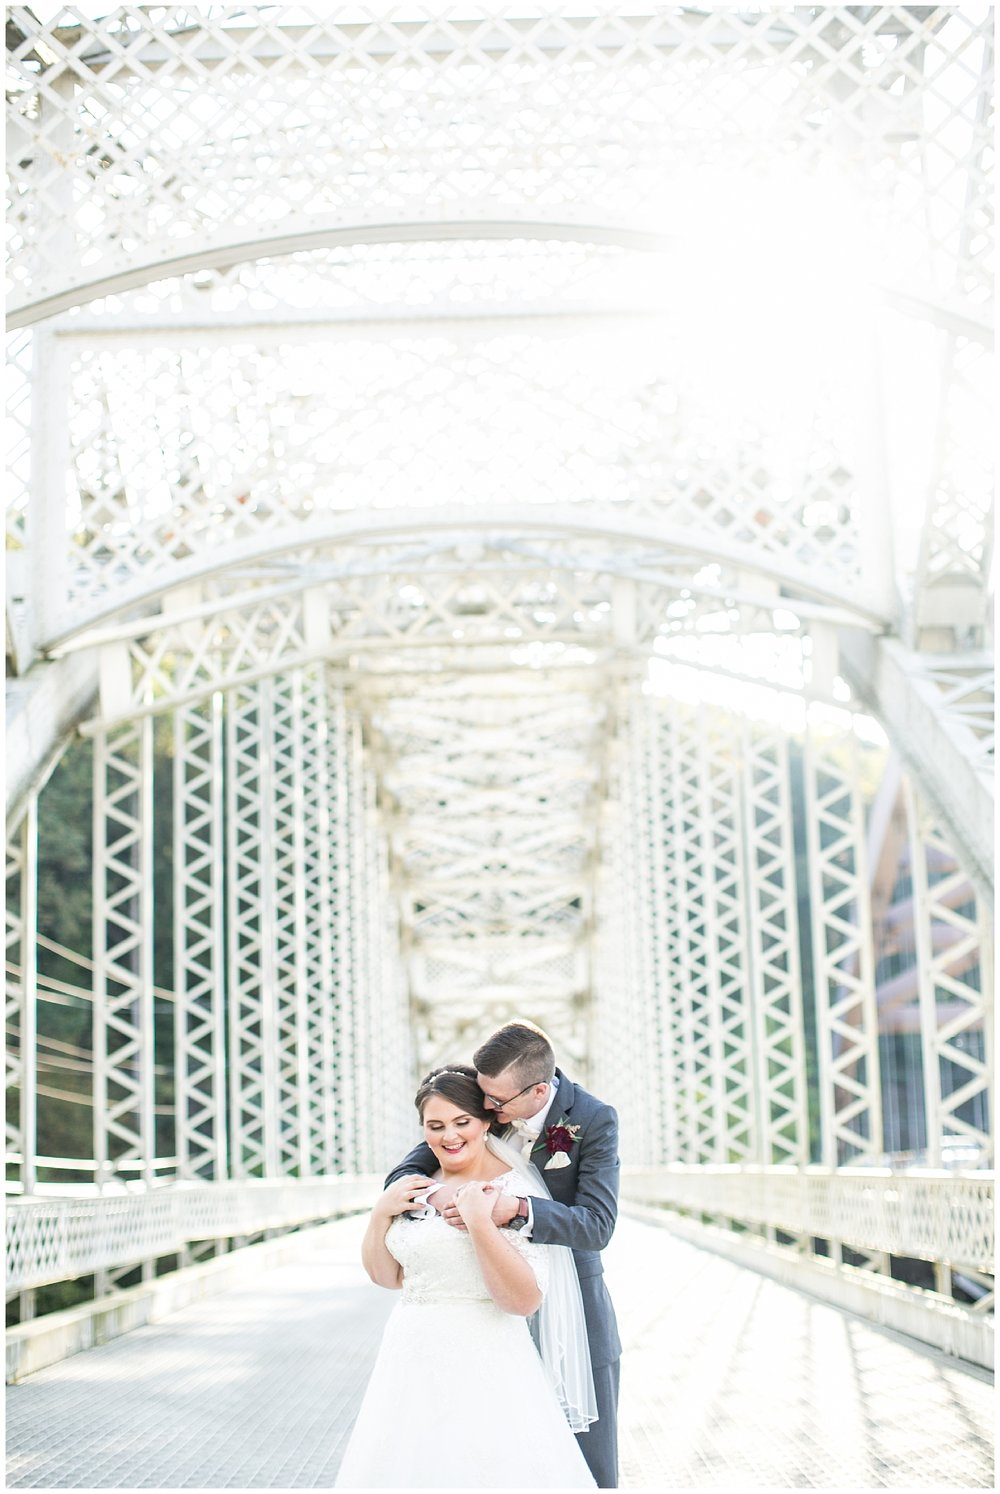 A+RWeddingLivingRadiantPhotographyweddingphotosedited_0026.jpg